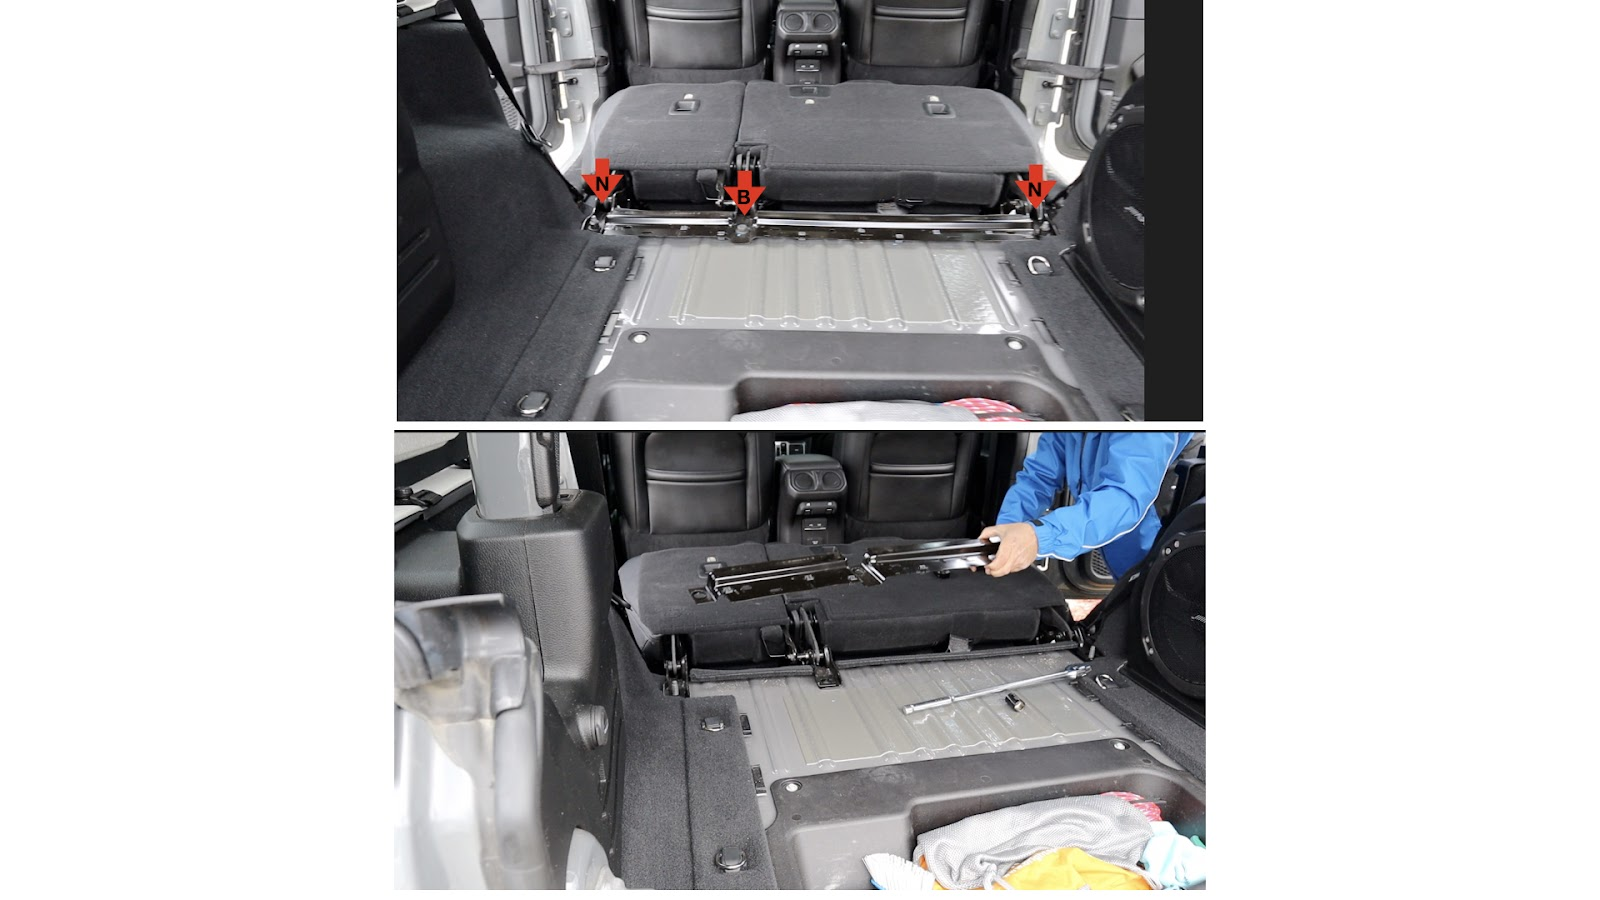 Removal of Rear Bolts of Rear Seat